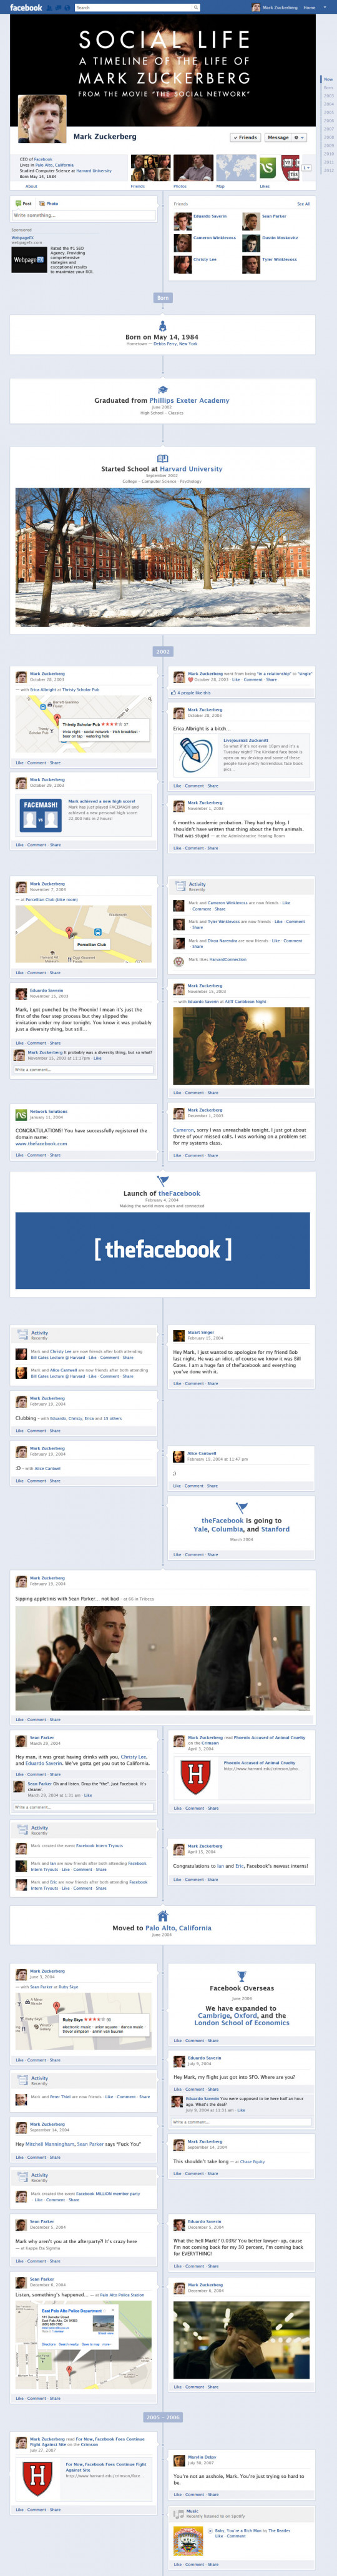 The Social Network: Zuck�s Timeline